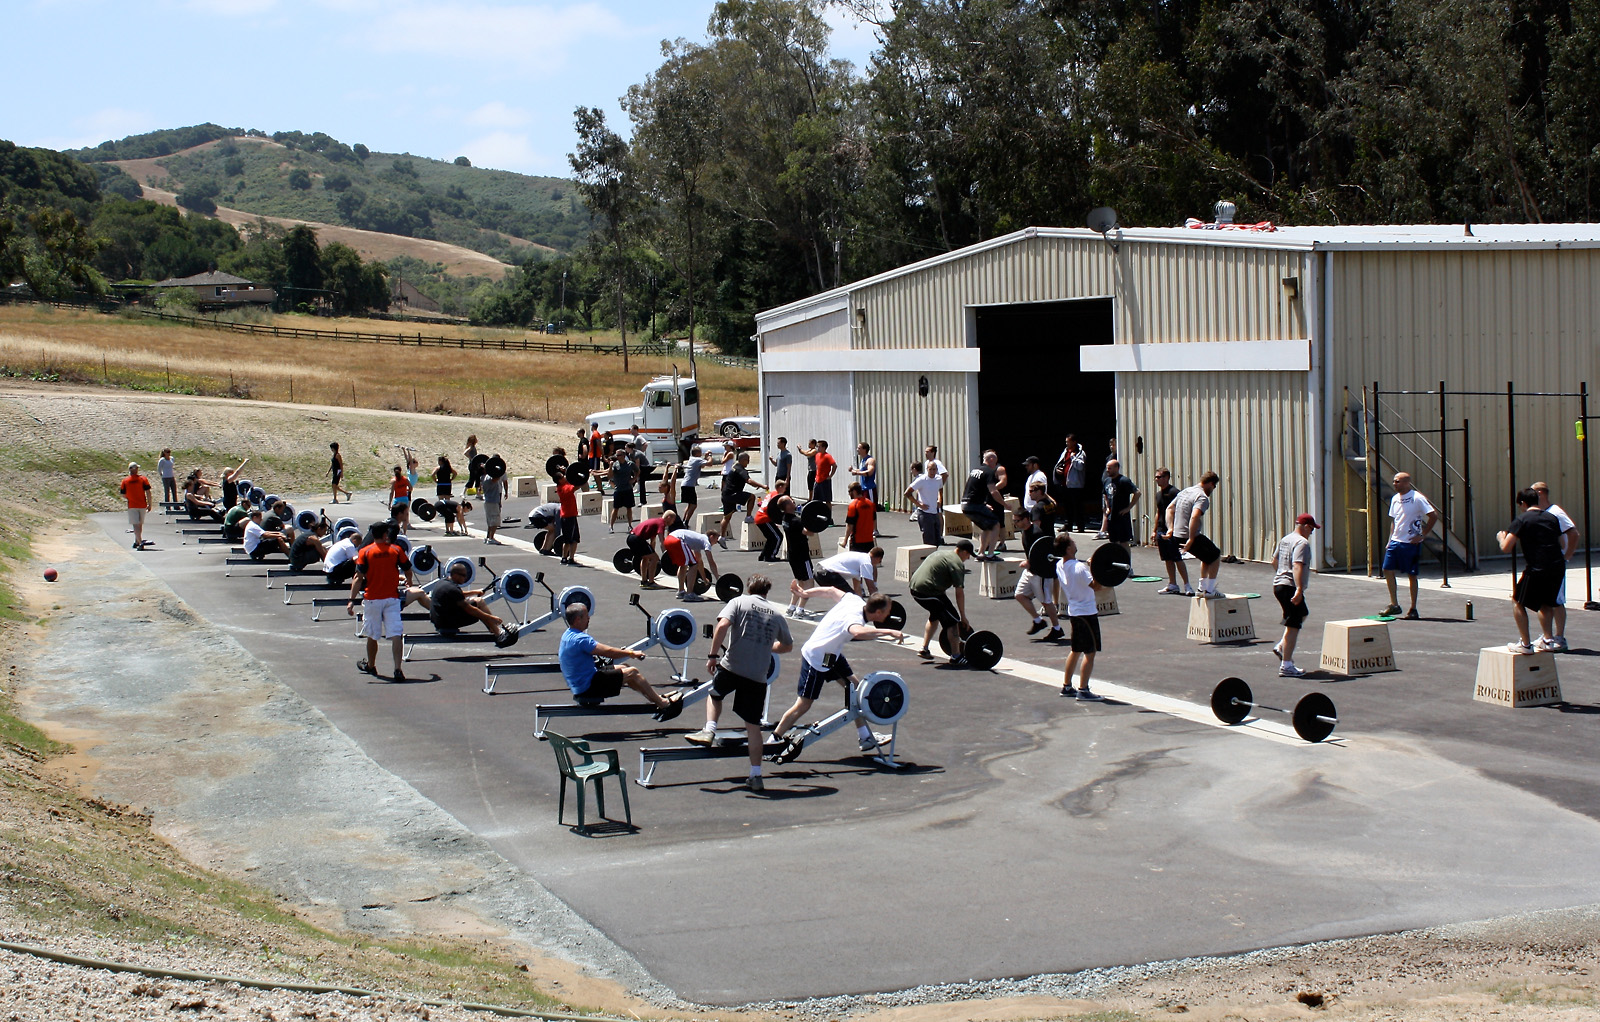 http://games2009.crossfit.com/Ranch09.jpg